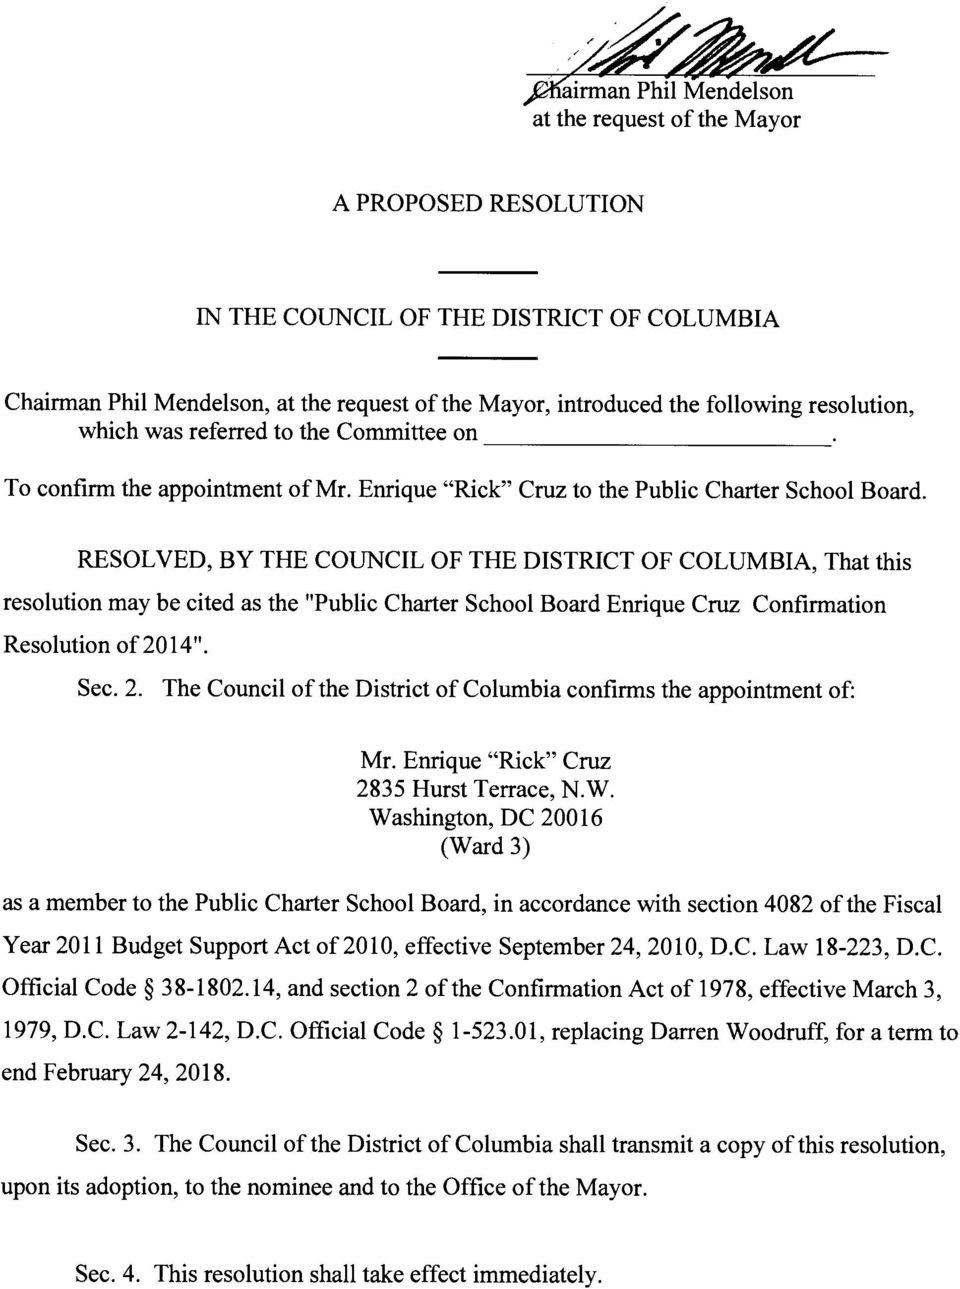 "RESOLVED, BY THE COUNCIL OF THE DISTRICT OF COLUMBIA, That this resolution may be cited as the ""Public Charter School Board Enrique Cruz Confirmation Resolution of 20"